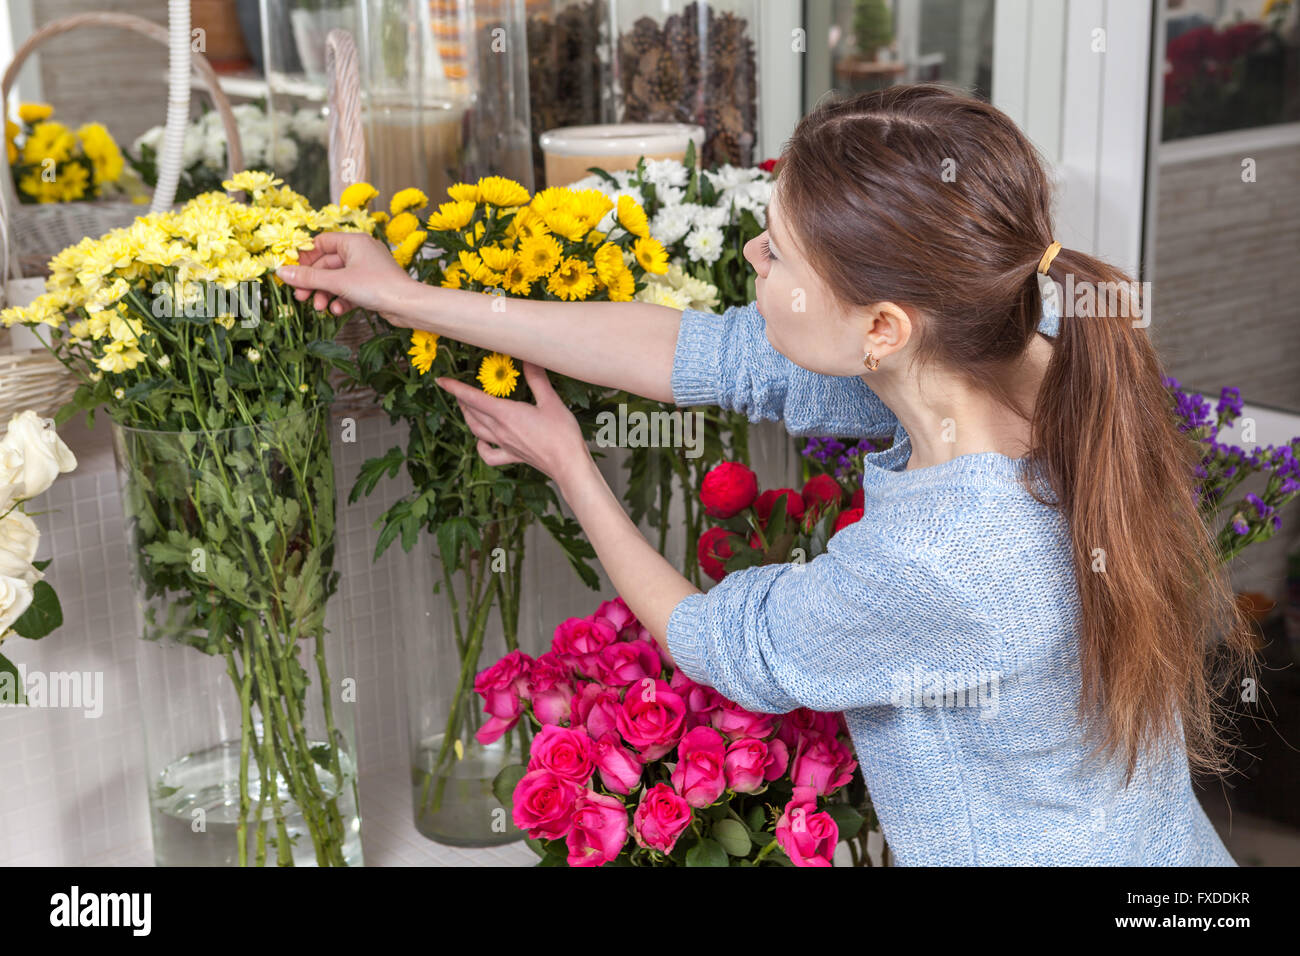 Woman caring for flowers at the shop - Stock Image